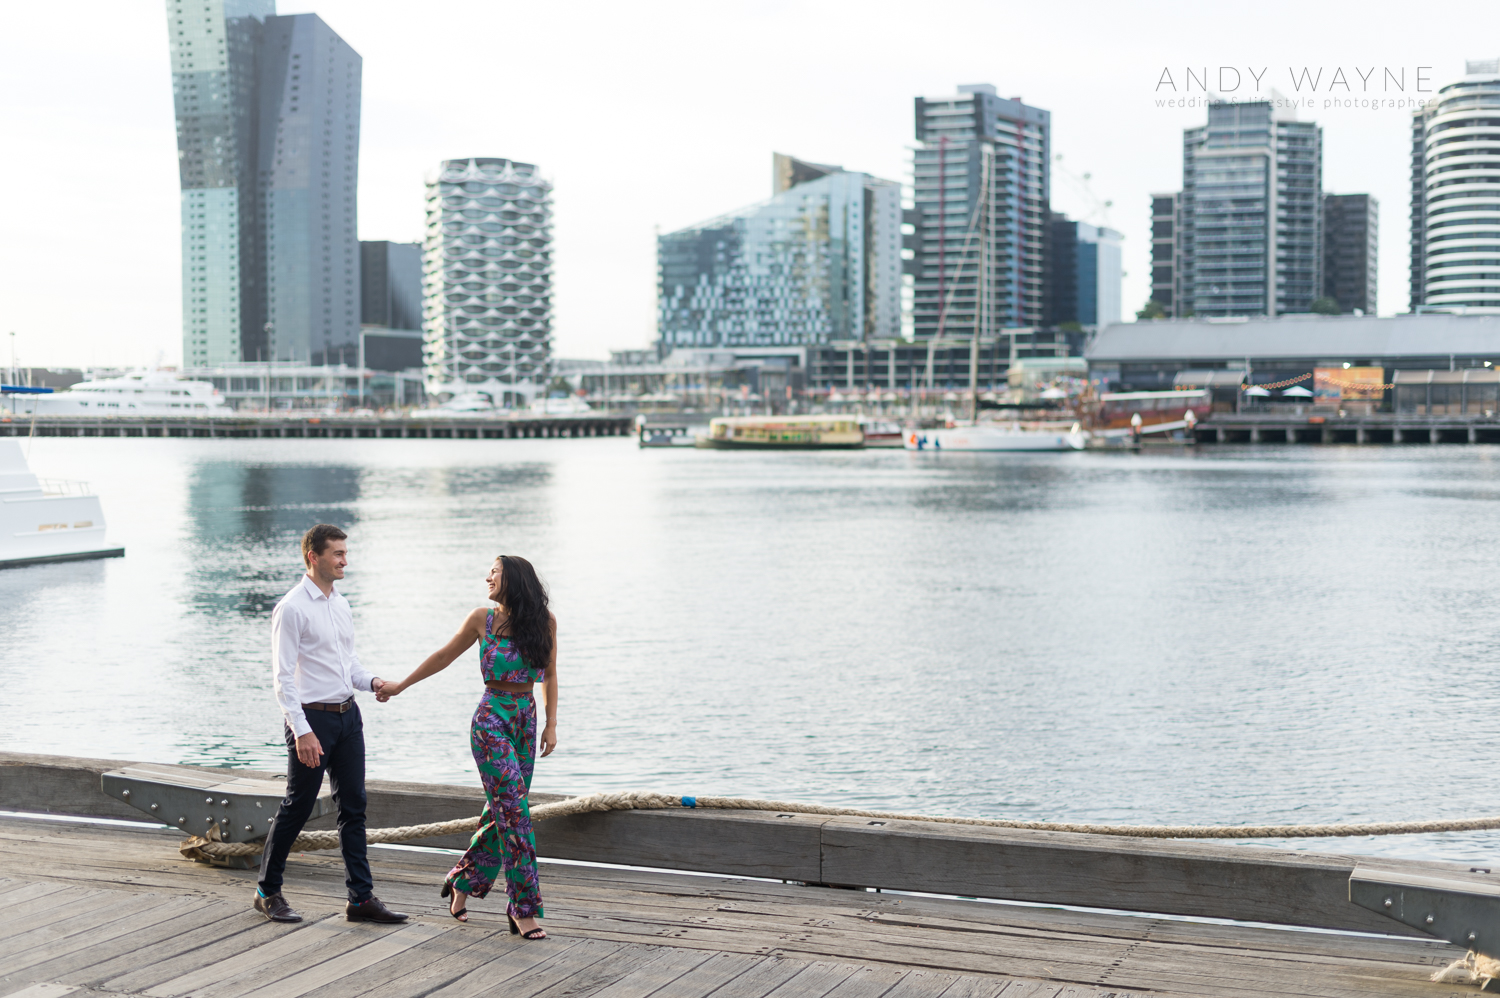 melbourne australia docklands andy wayne photographer engagement shoot-33.jpg